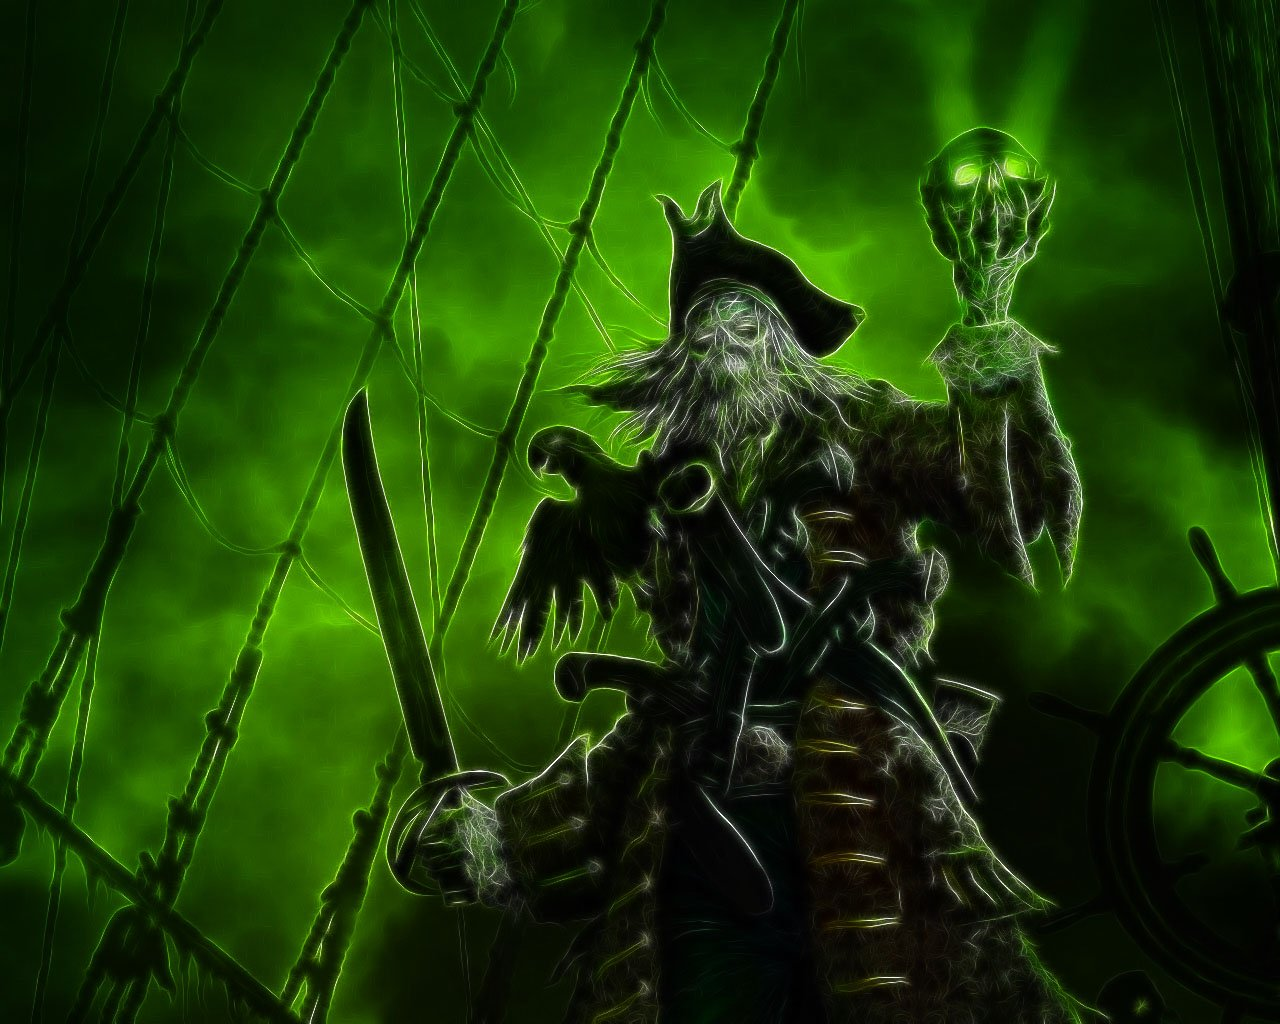 Free Download Dead Pirate Wallpaper Background 1280x1024